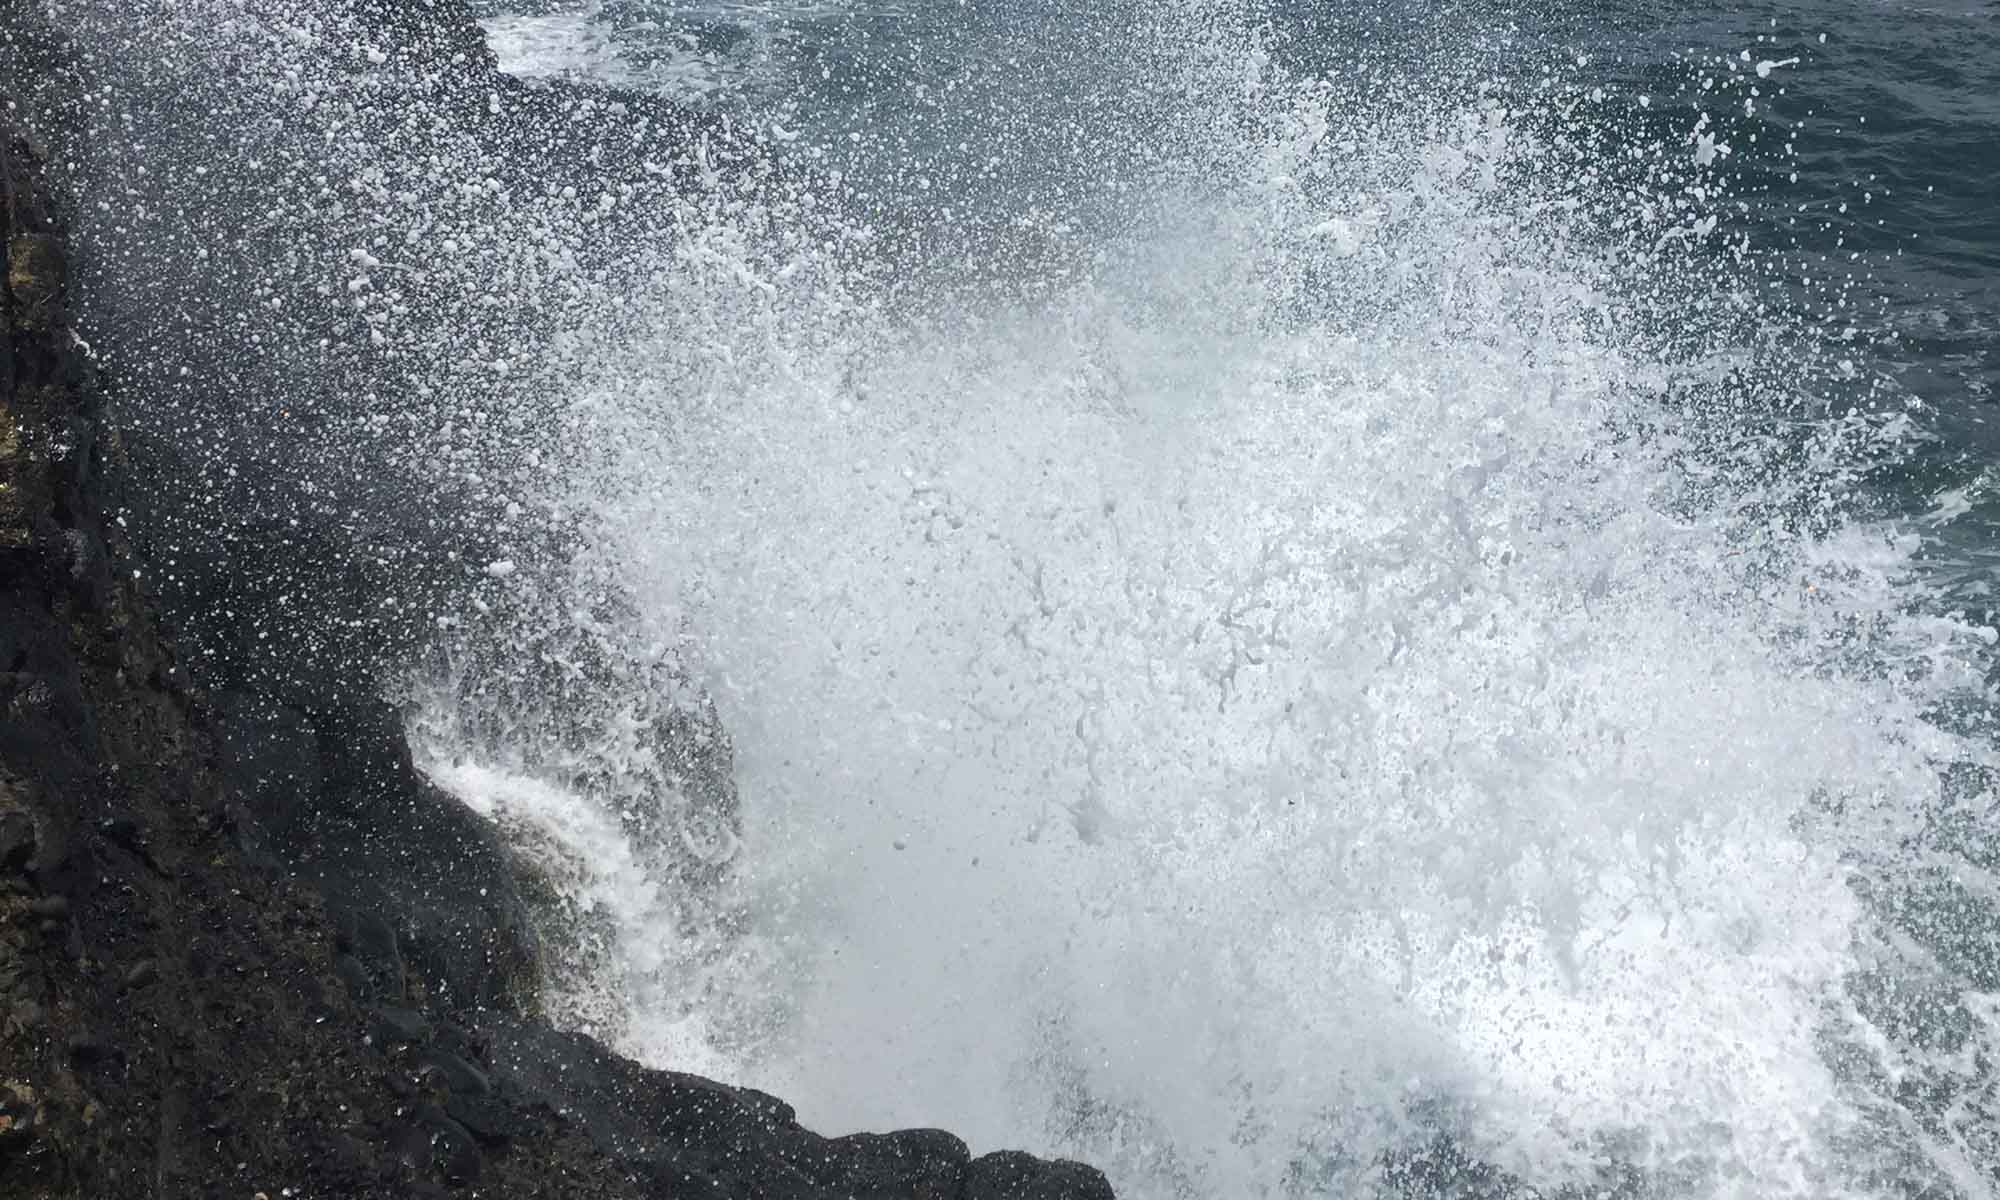 The Famous Blowhole on Tahiti